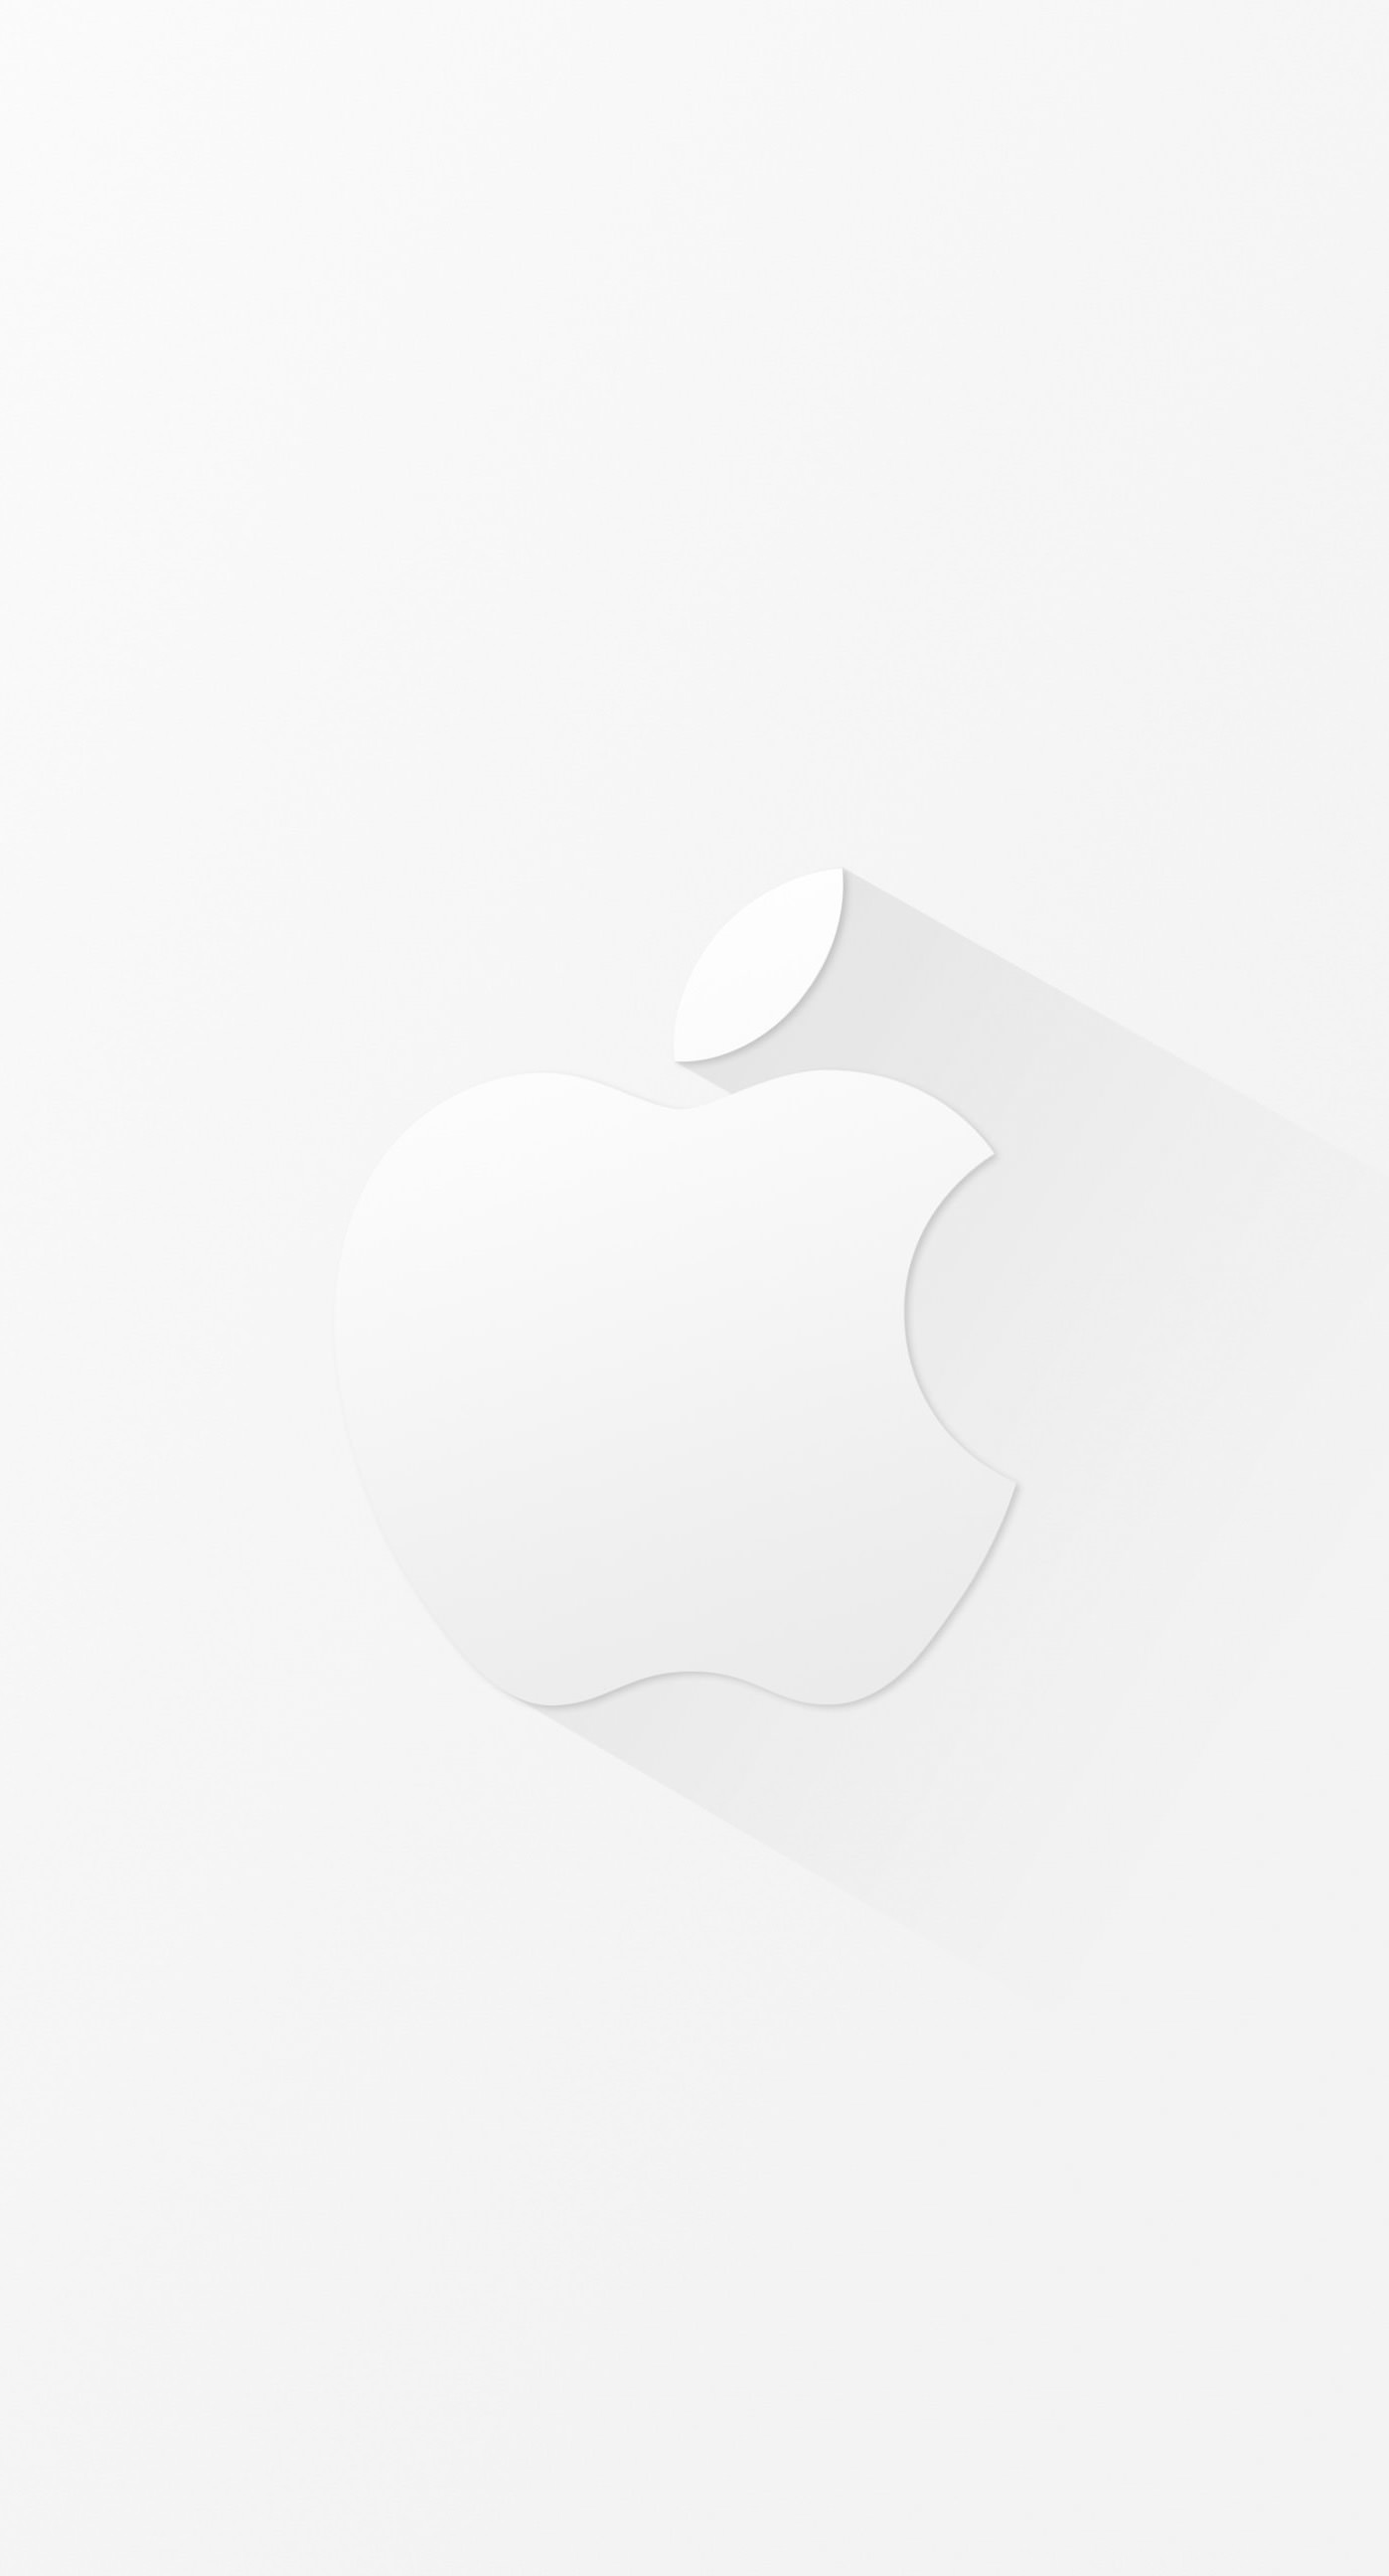 Keren Logo Apple Putih Wallpaper Sc Iphone6splus